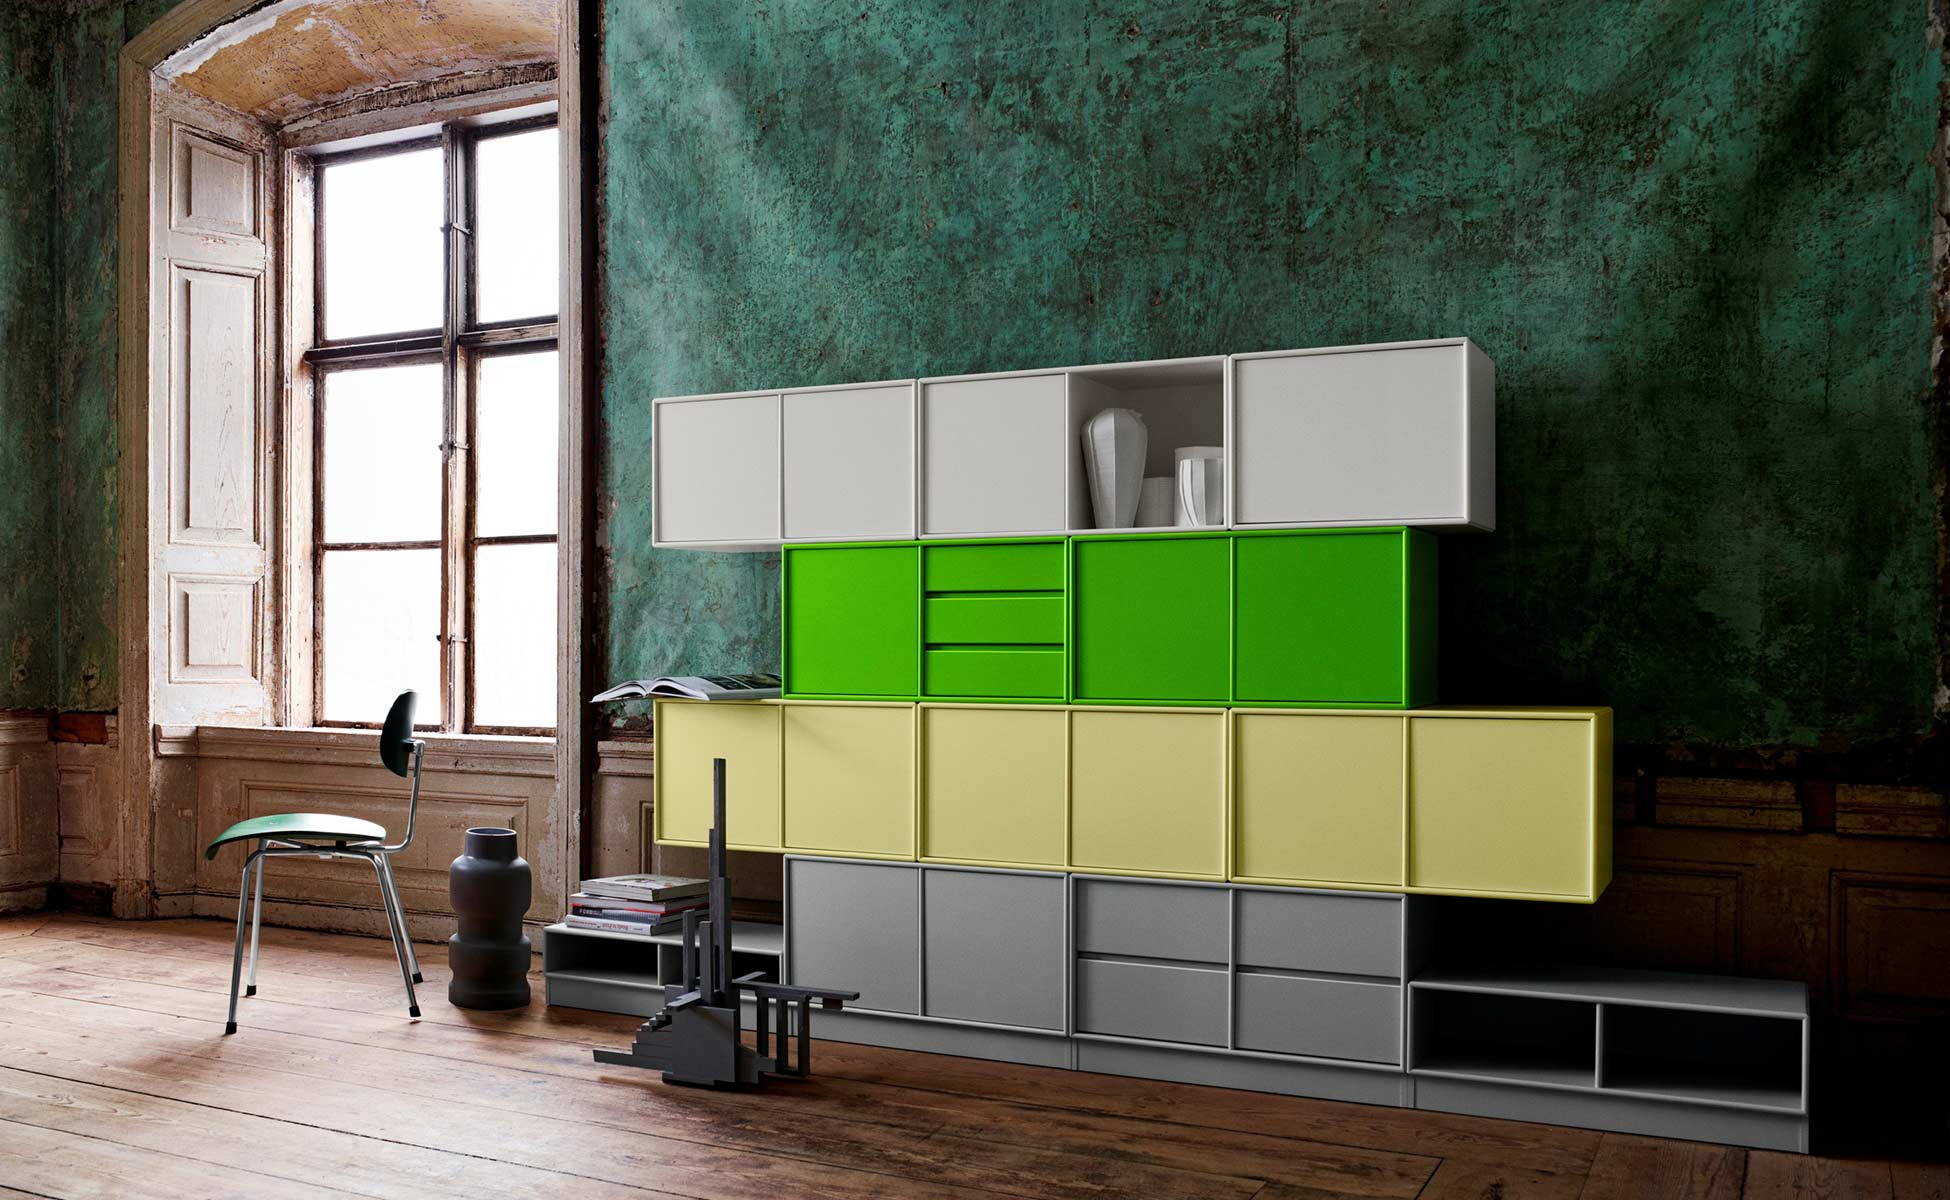 montana regalsystem berlin steidten einrichten mit architekturintelligenz. Black Bedroom Furniture Sets. Home Design Ideas